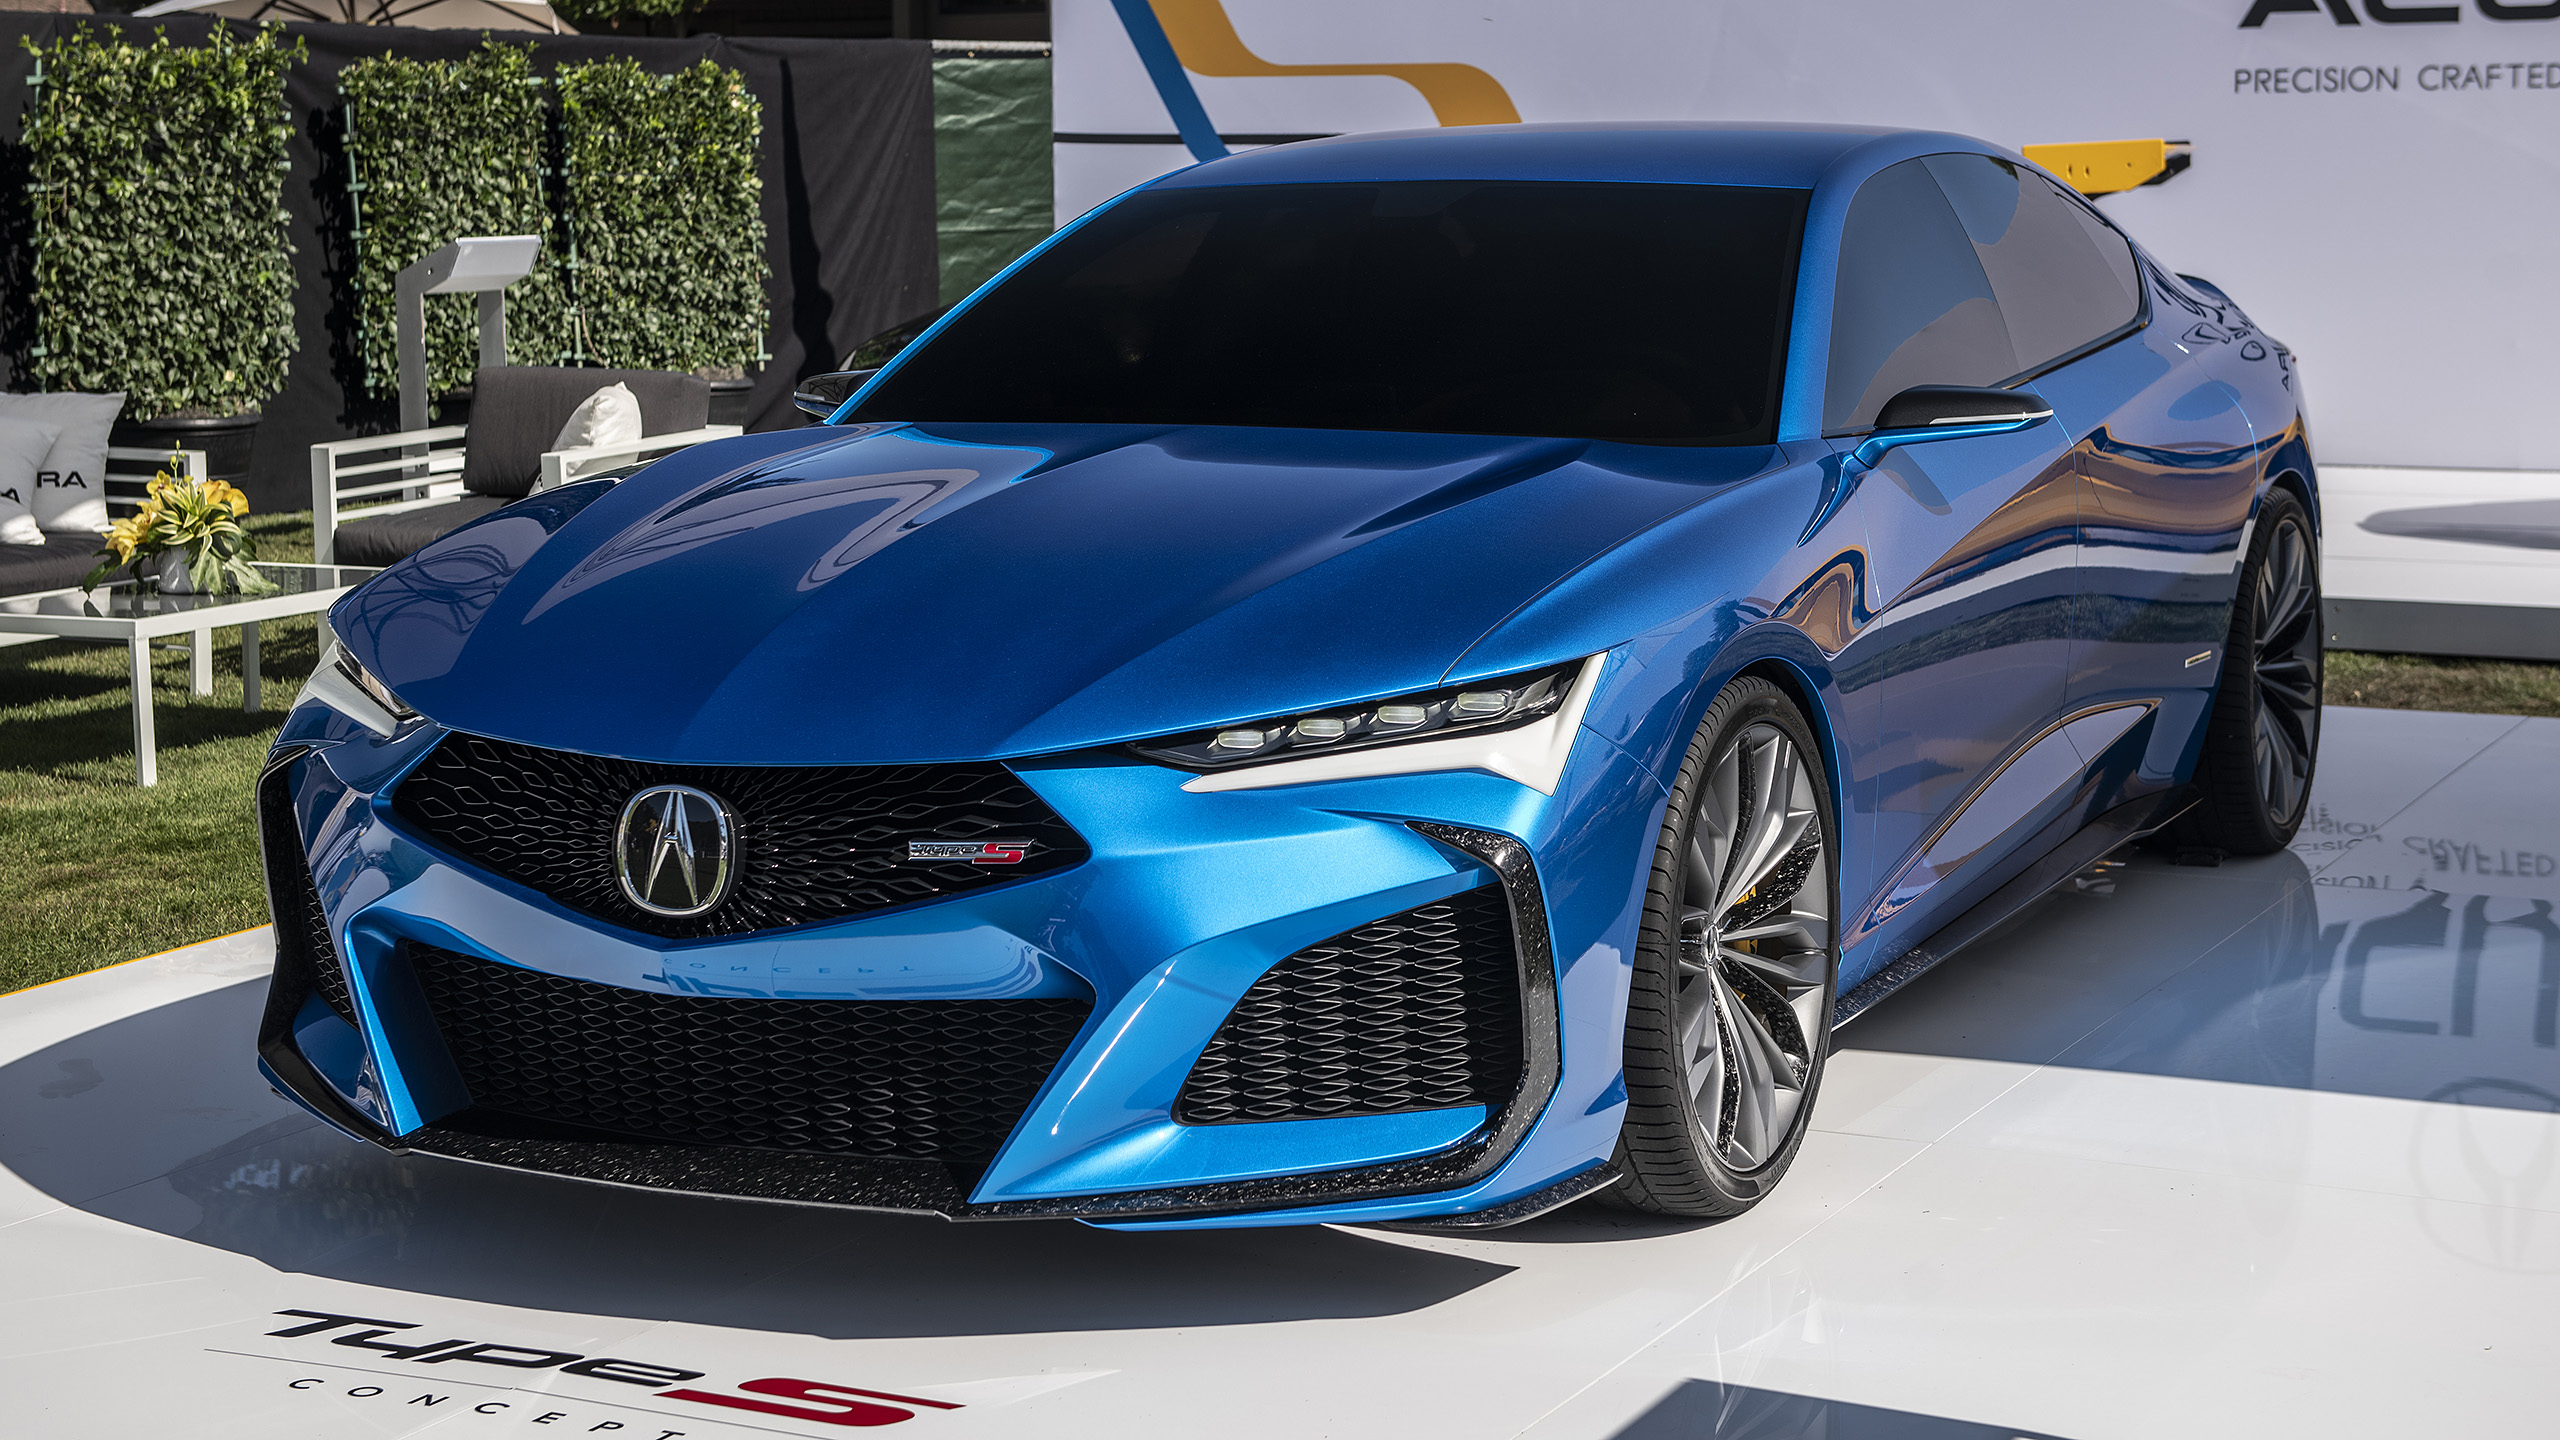 Acura Certified Pre Owned >> Acura Type S Concept looks even better in the Monterey sun ...